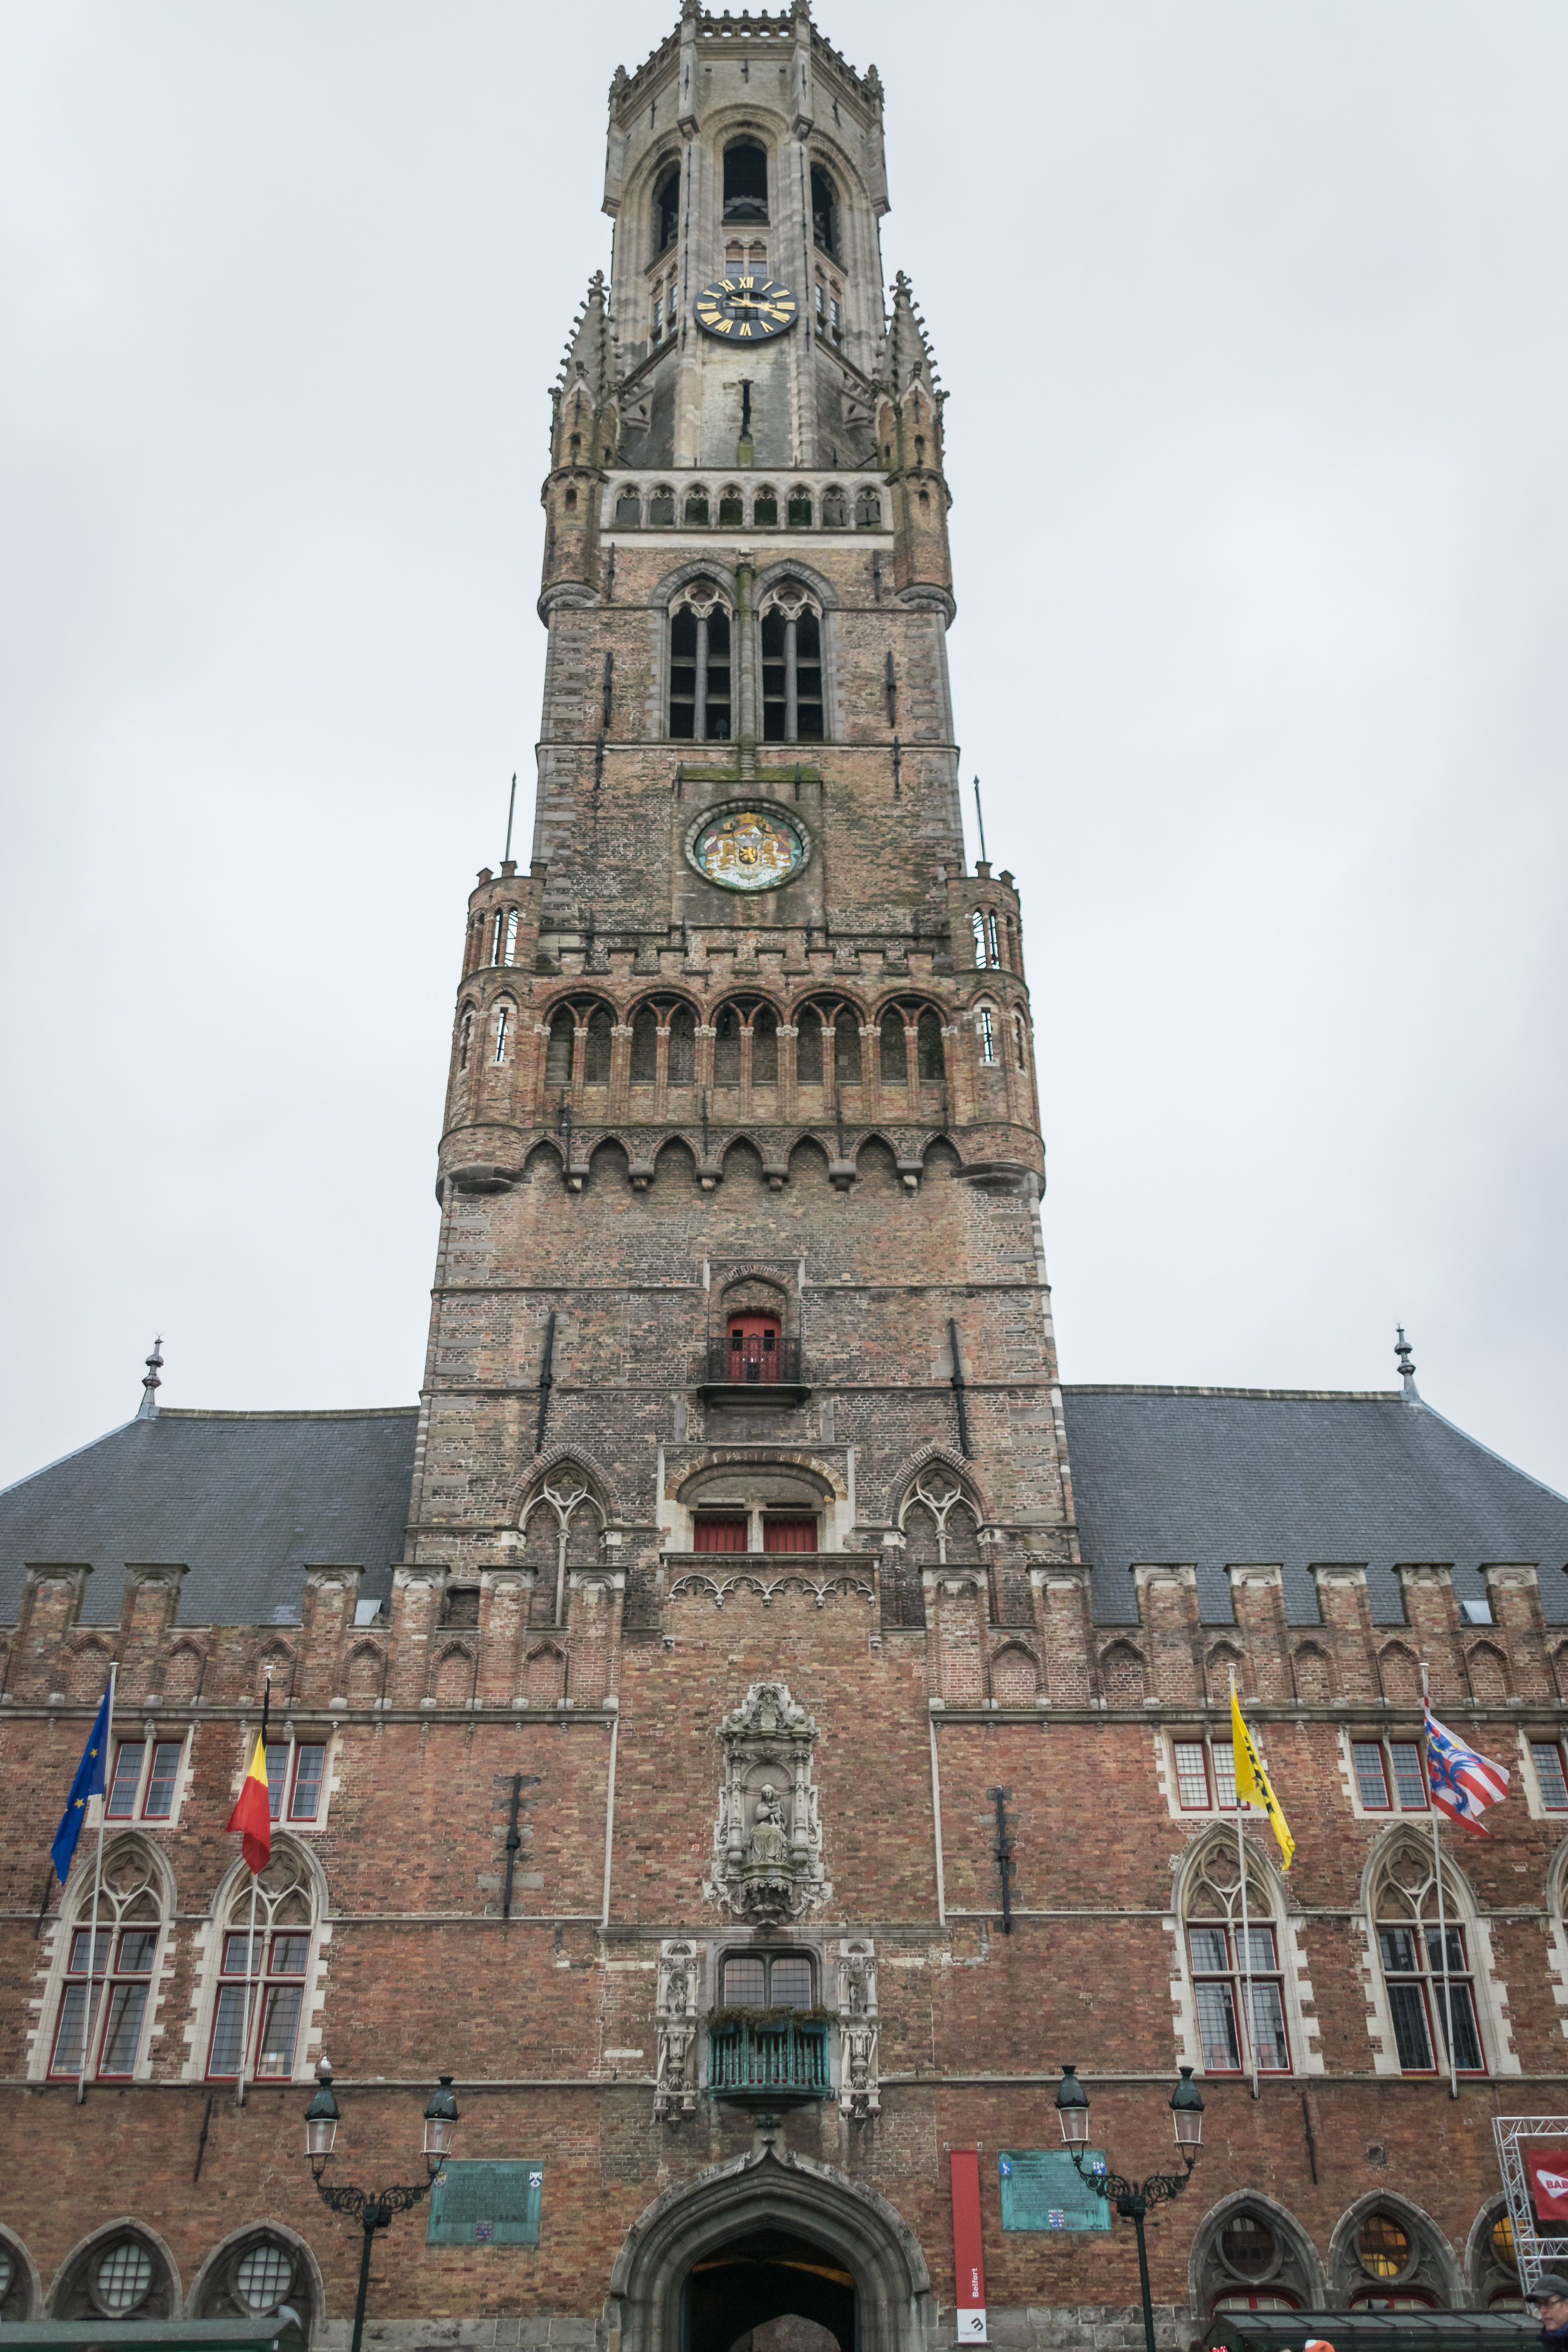 the Belfry is open for energetic climbers; it was taller in the Middle Ages before being struck by lightning and burning... multiple times